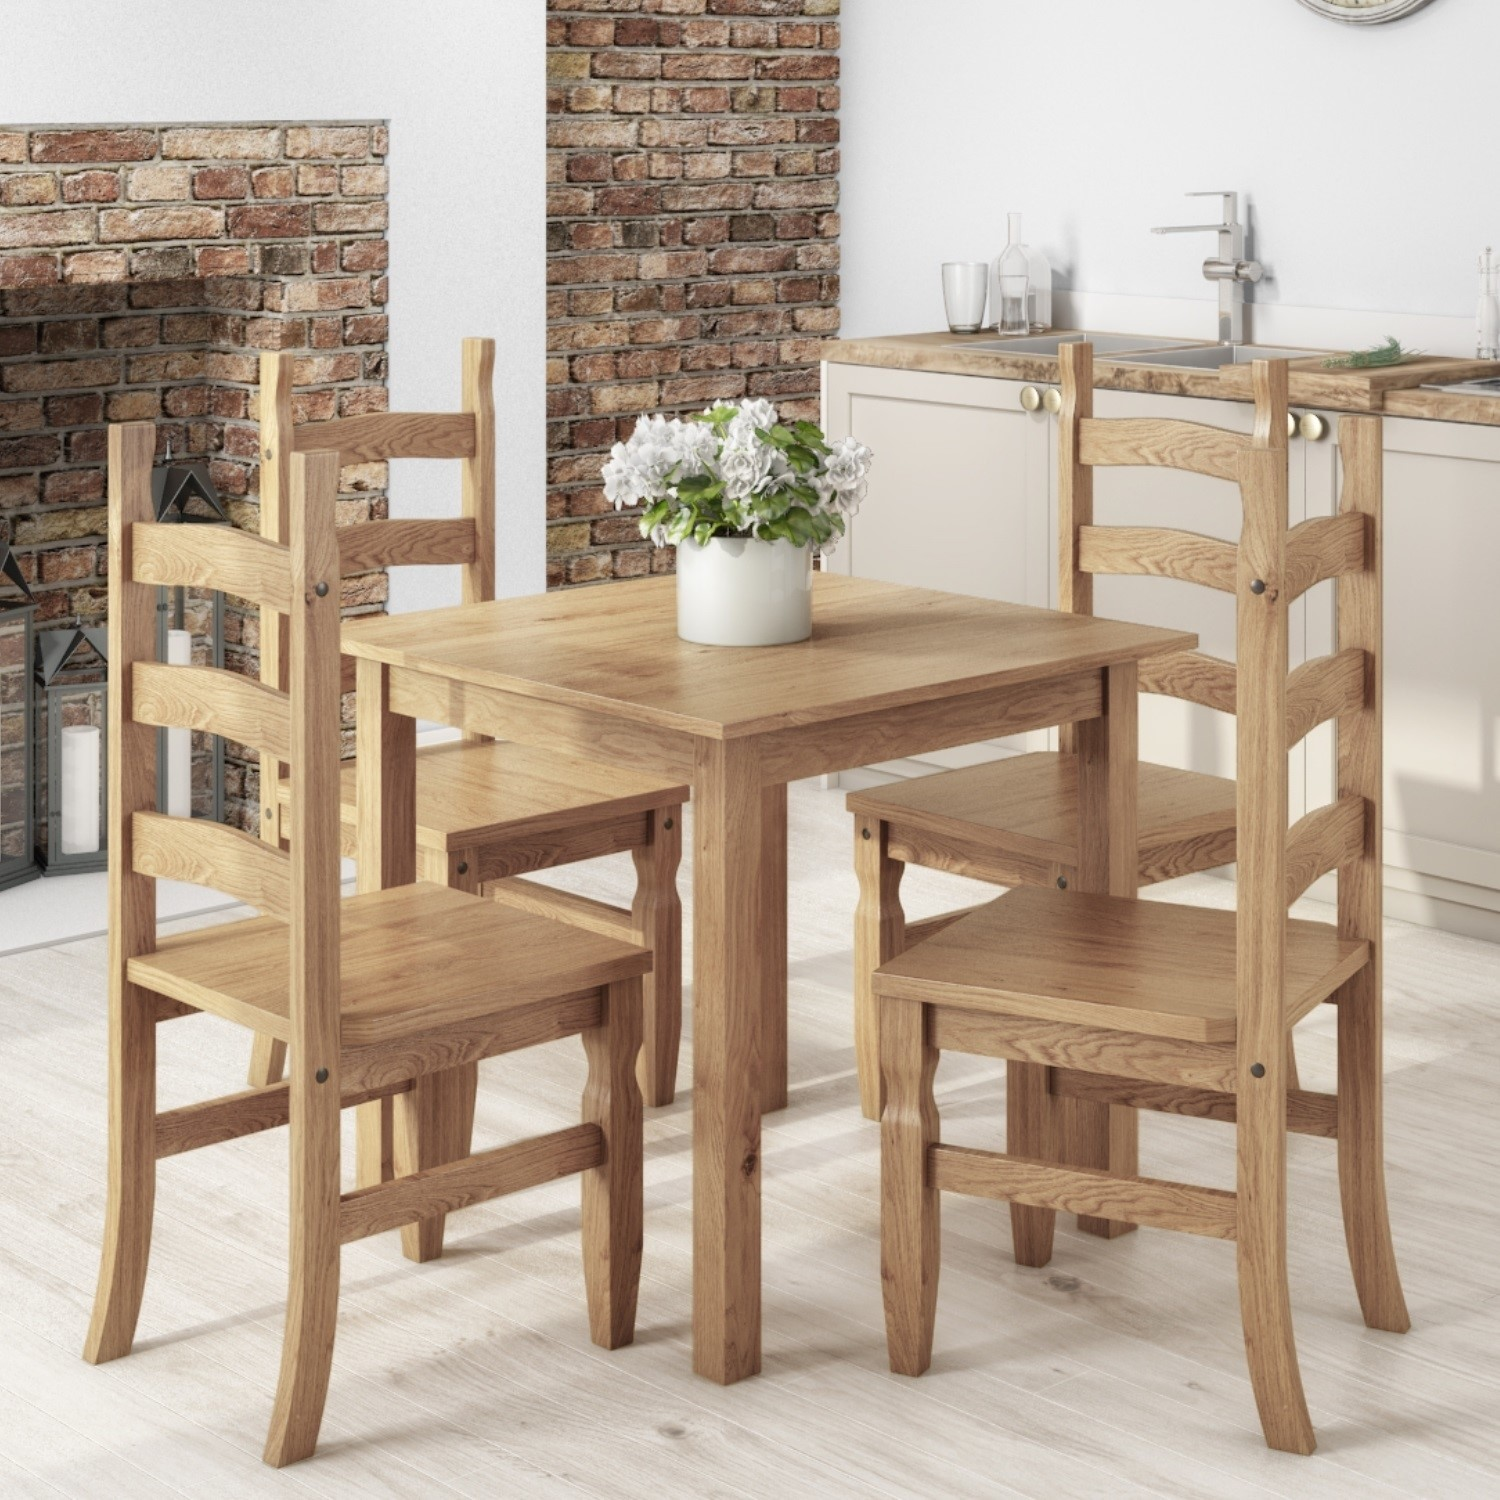 on sale 34214 a8640 Small Square Dining Table with 4 Dining Chairs in Solid Pine - Corona